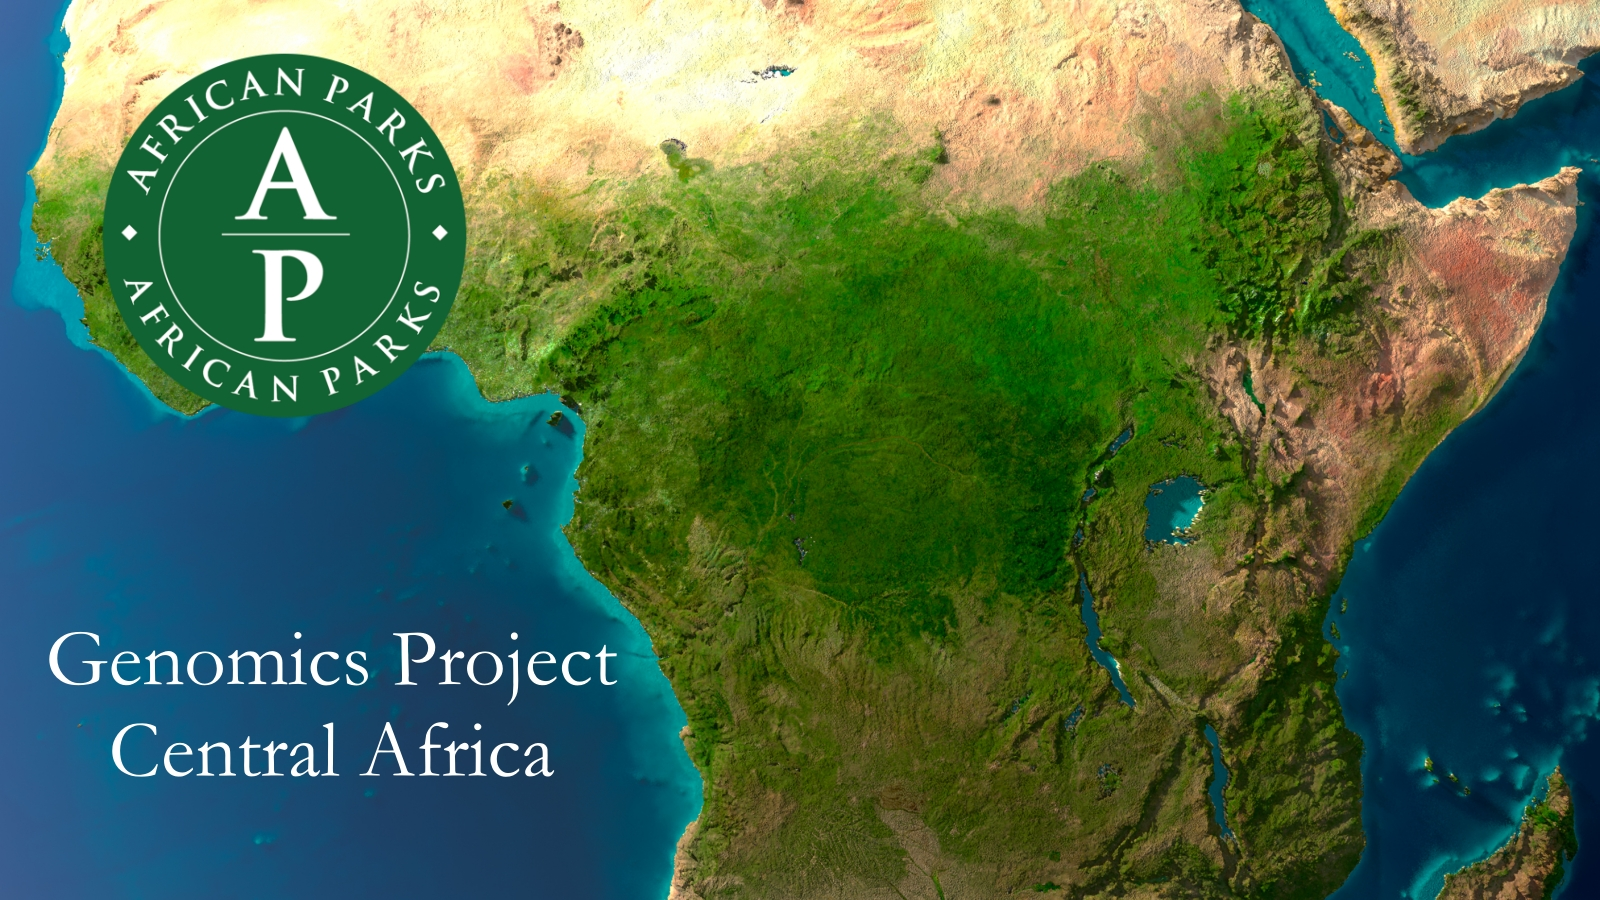 Genomics Project, Central Africa